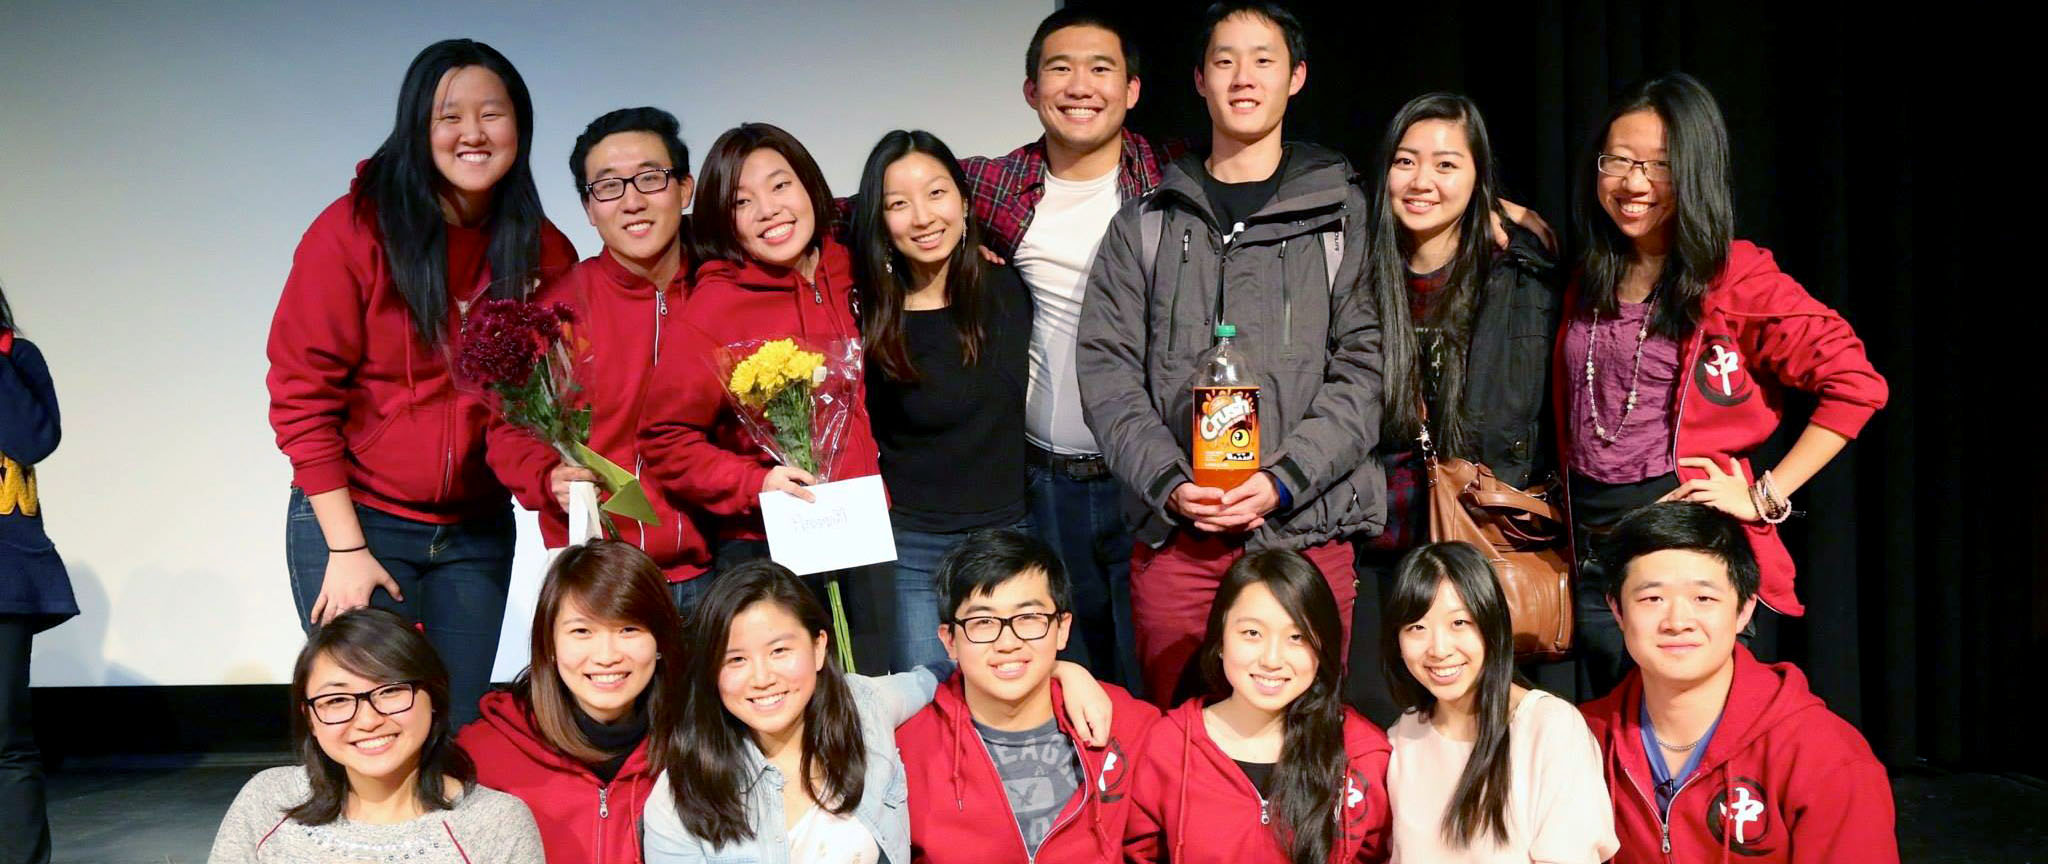 Matt with the Chinese Student Association at their cultural show performance.